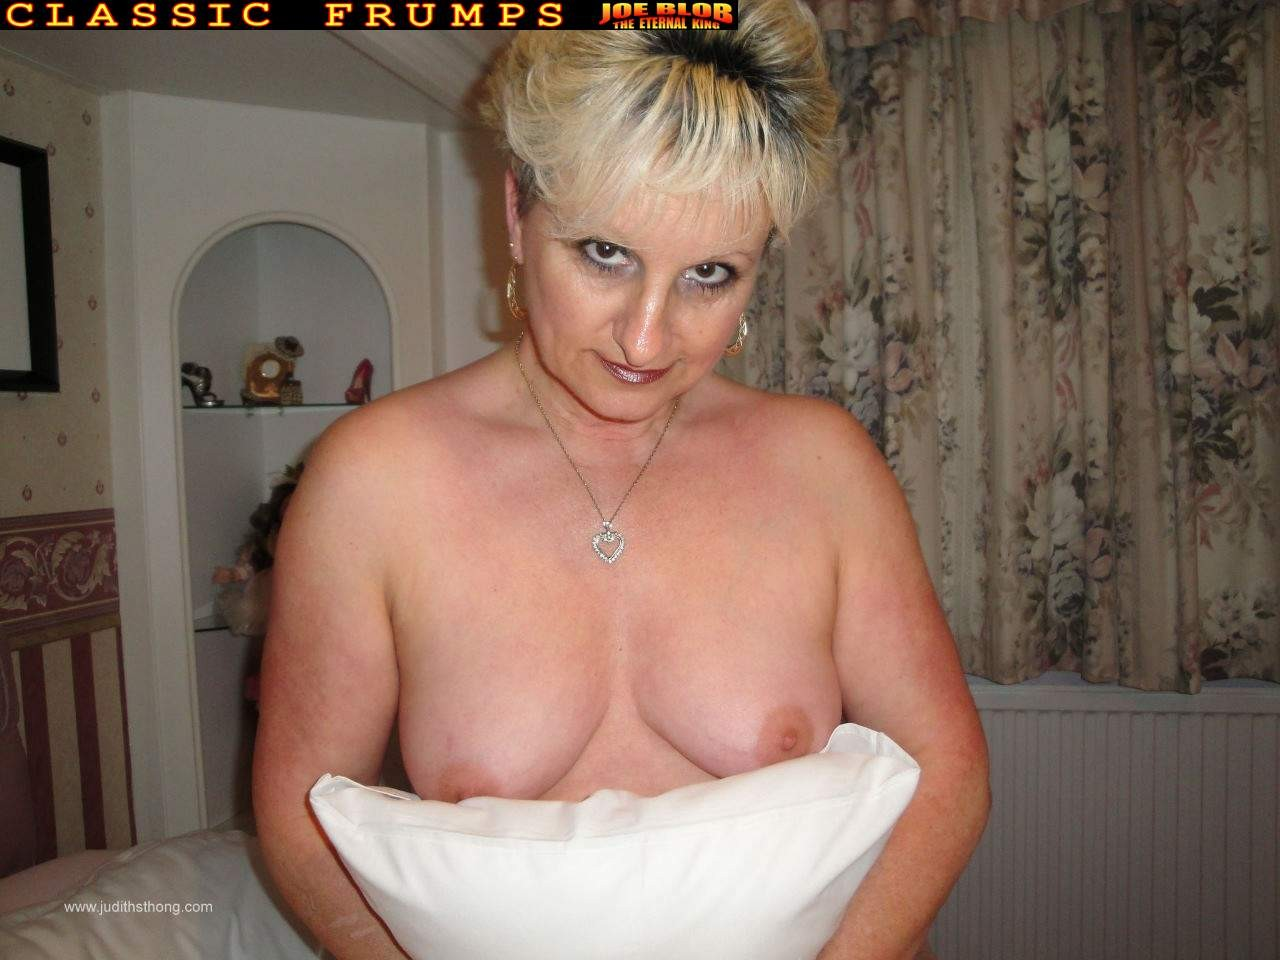 ... Mature Porn Ass Hardcore Milf Tit Photo Slut Bitch Schlampe Erica: www.older-mature.net/mature-hardcore-photos/27464.html